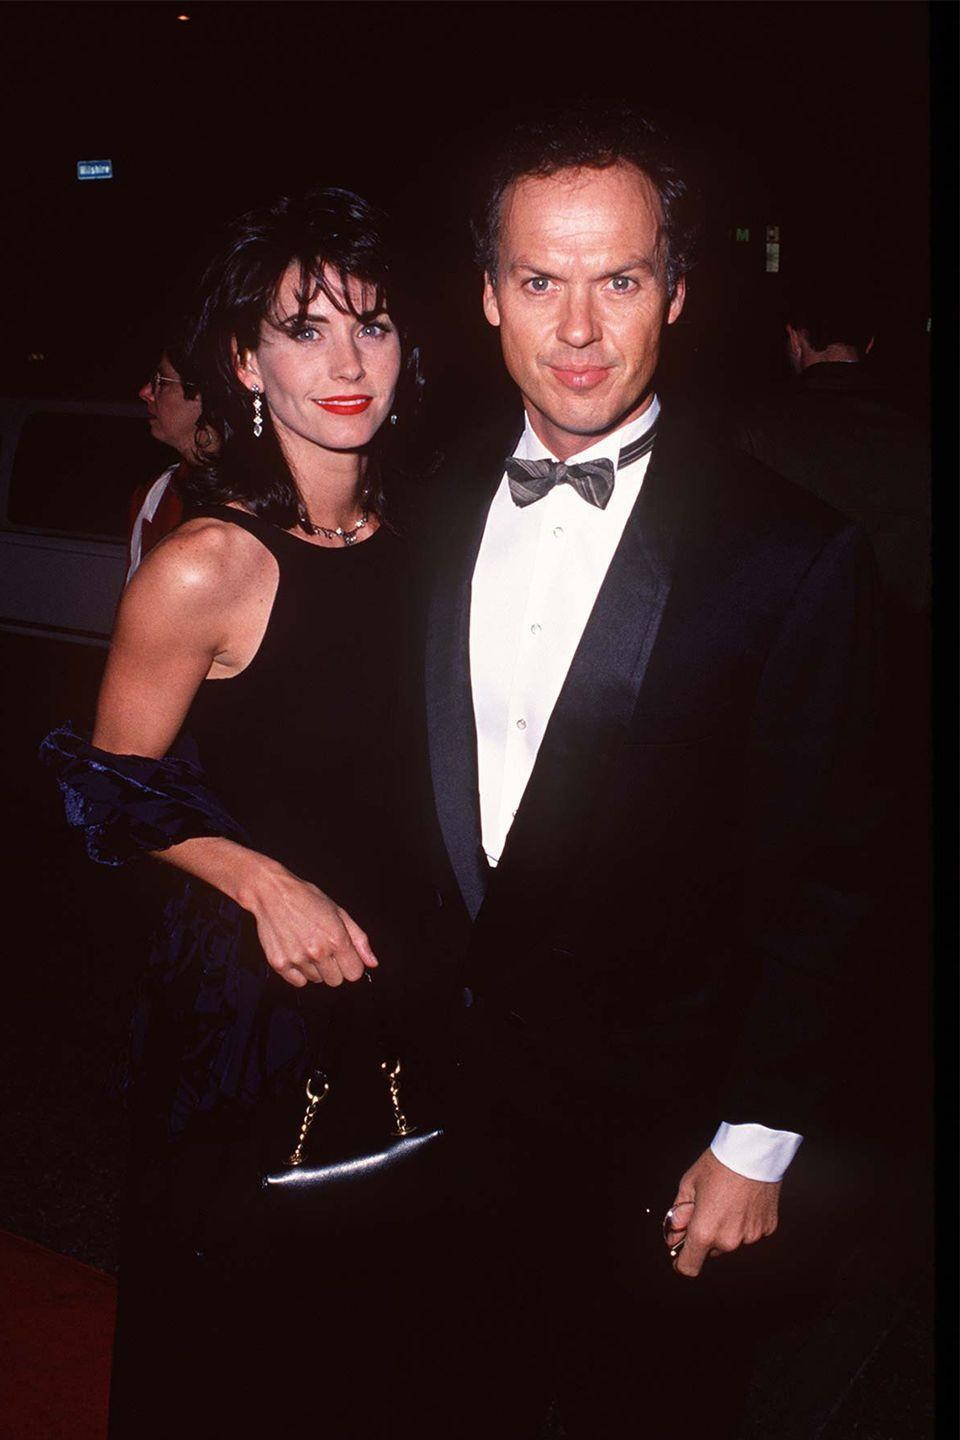 """<p>Courteney Cox and Michael Keaton dated for nearly six years, during which time they would bring home scripts and practice running lines together. Sadly, they made a joint decision to end their relationship in 1995. """"It's the most important relationship I've ever had, and I think he's the most wonderful person I've ever met,"""" Cox <a href=""""http://people.com/archive/cover-story-handy-woman-vol-44-no-22/"""" rel=""""nofollow noopener"""" target=""""_blank"""" data-ylk=""""slk:told People"""" class=""""link rapid-noclick-resp"""">told <em>People</em></a> in an interview that year.</p>"""